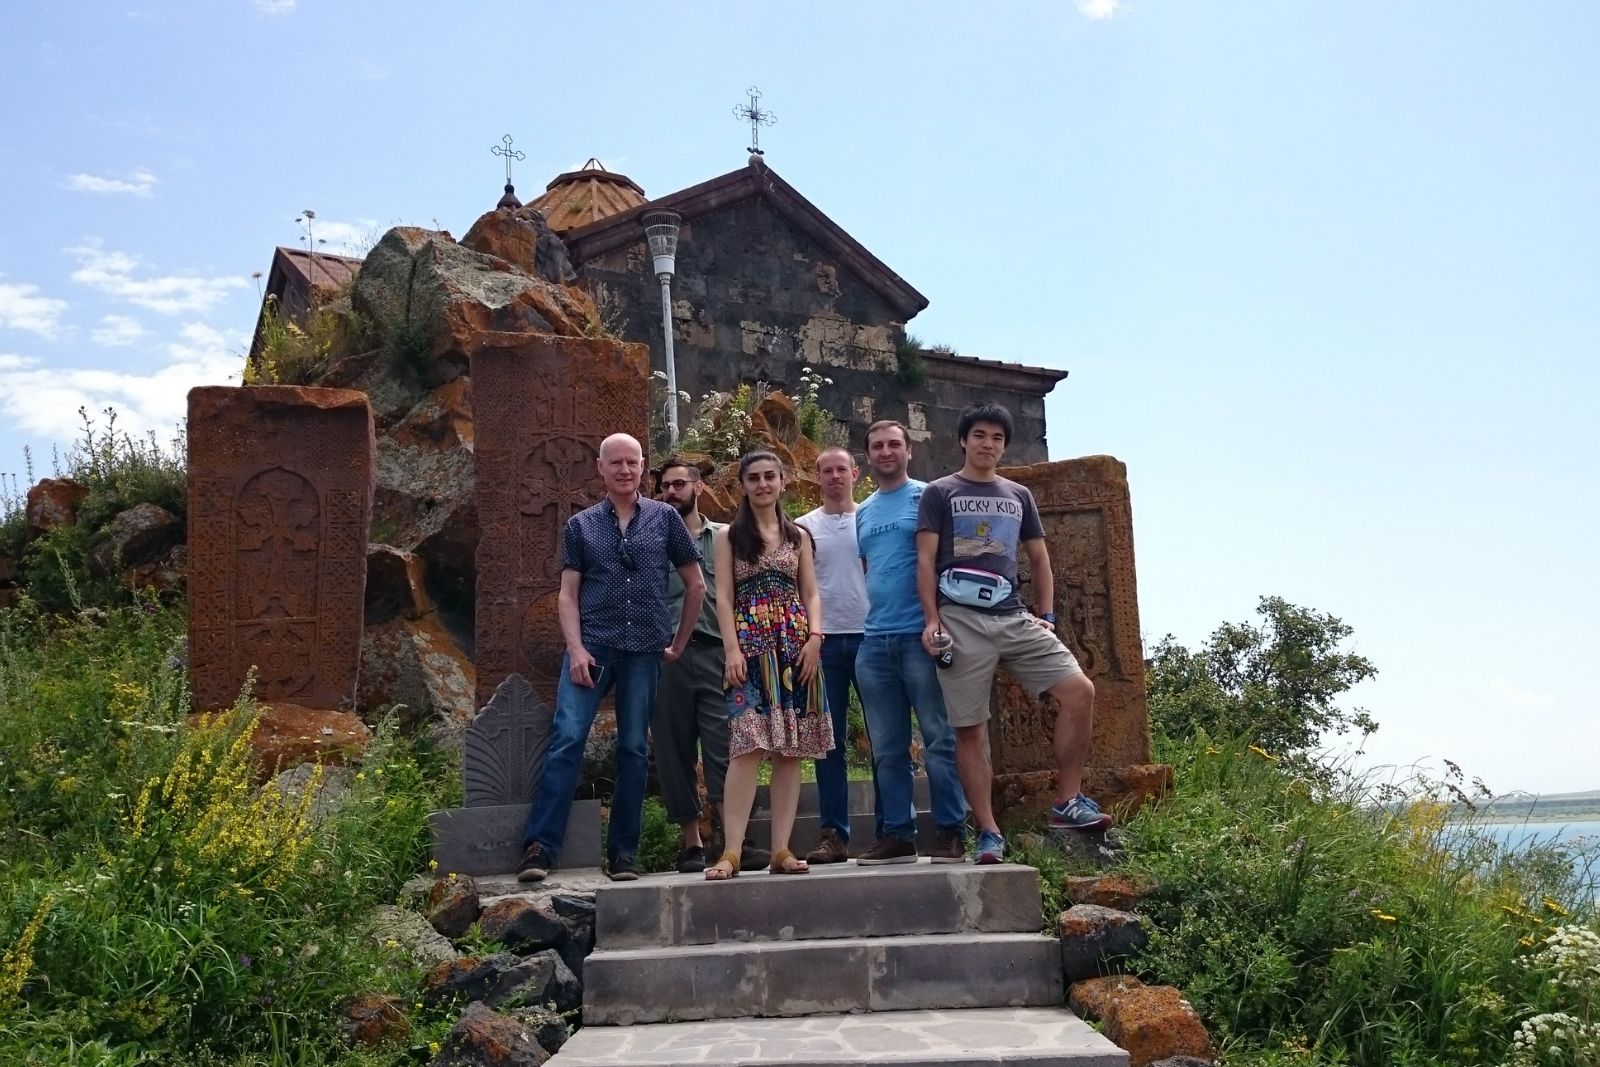 2016 Armenian Studies summer school participants at Hayravank monastery on lake Sevan